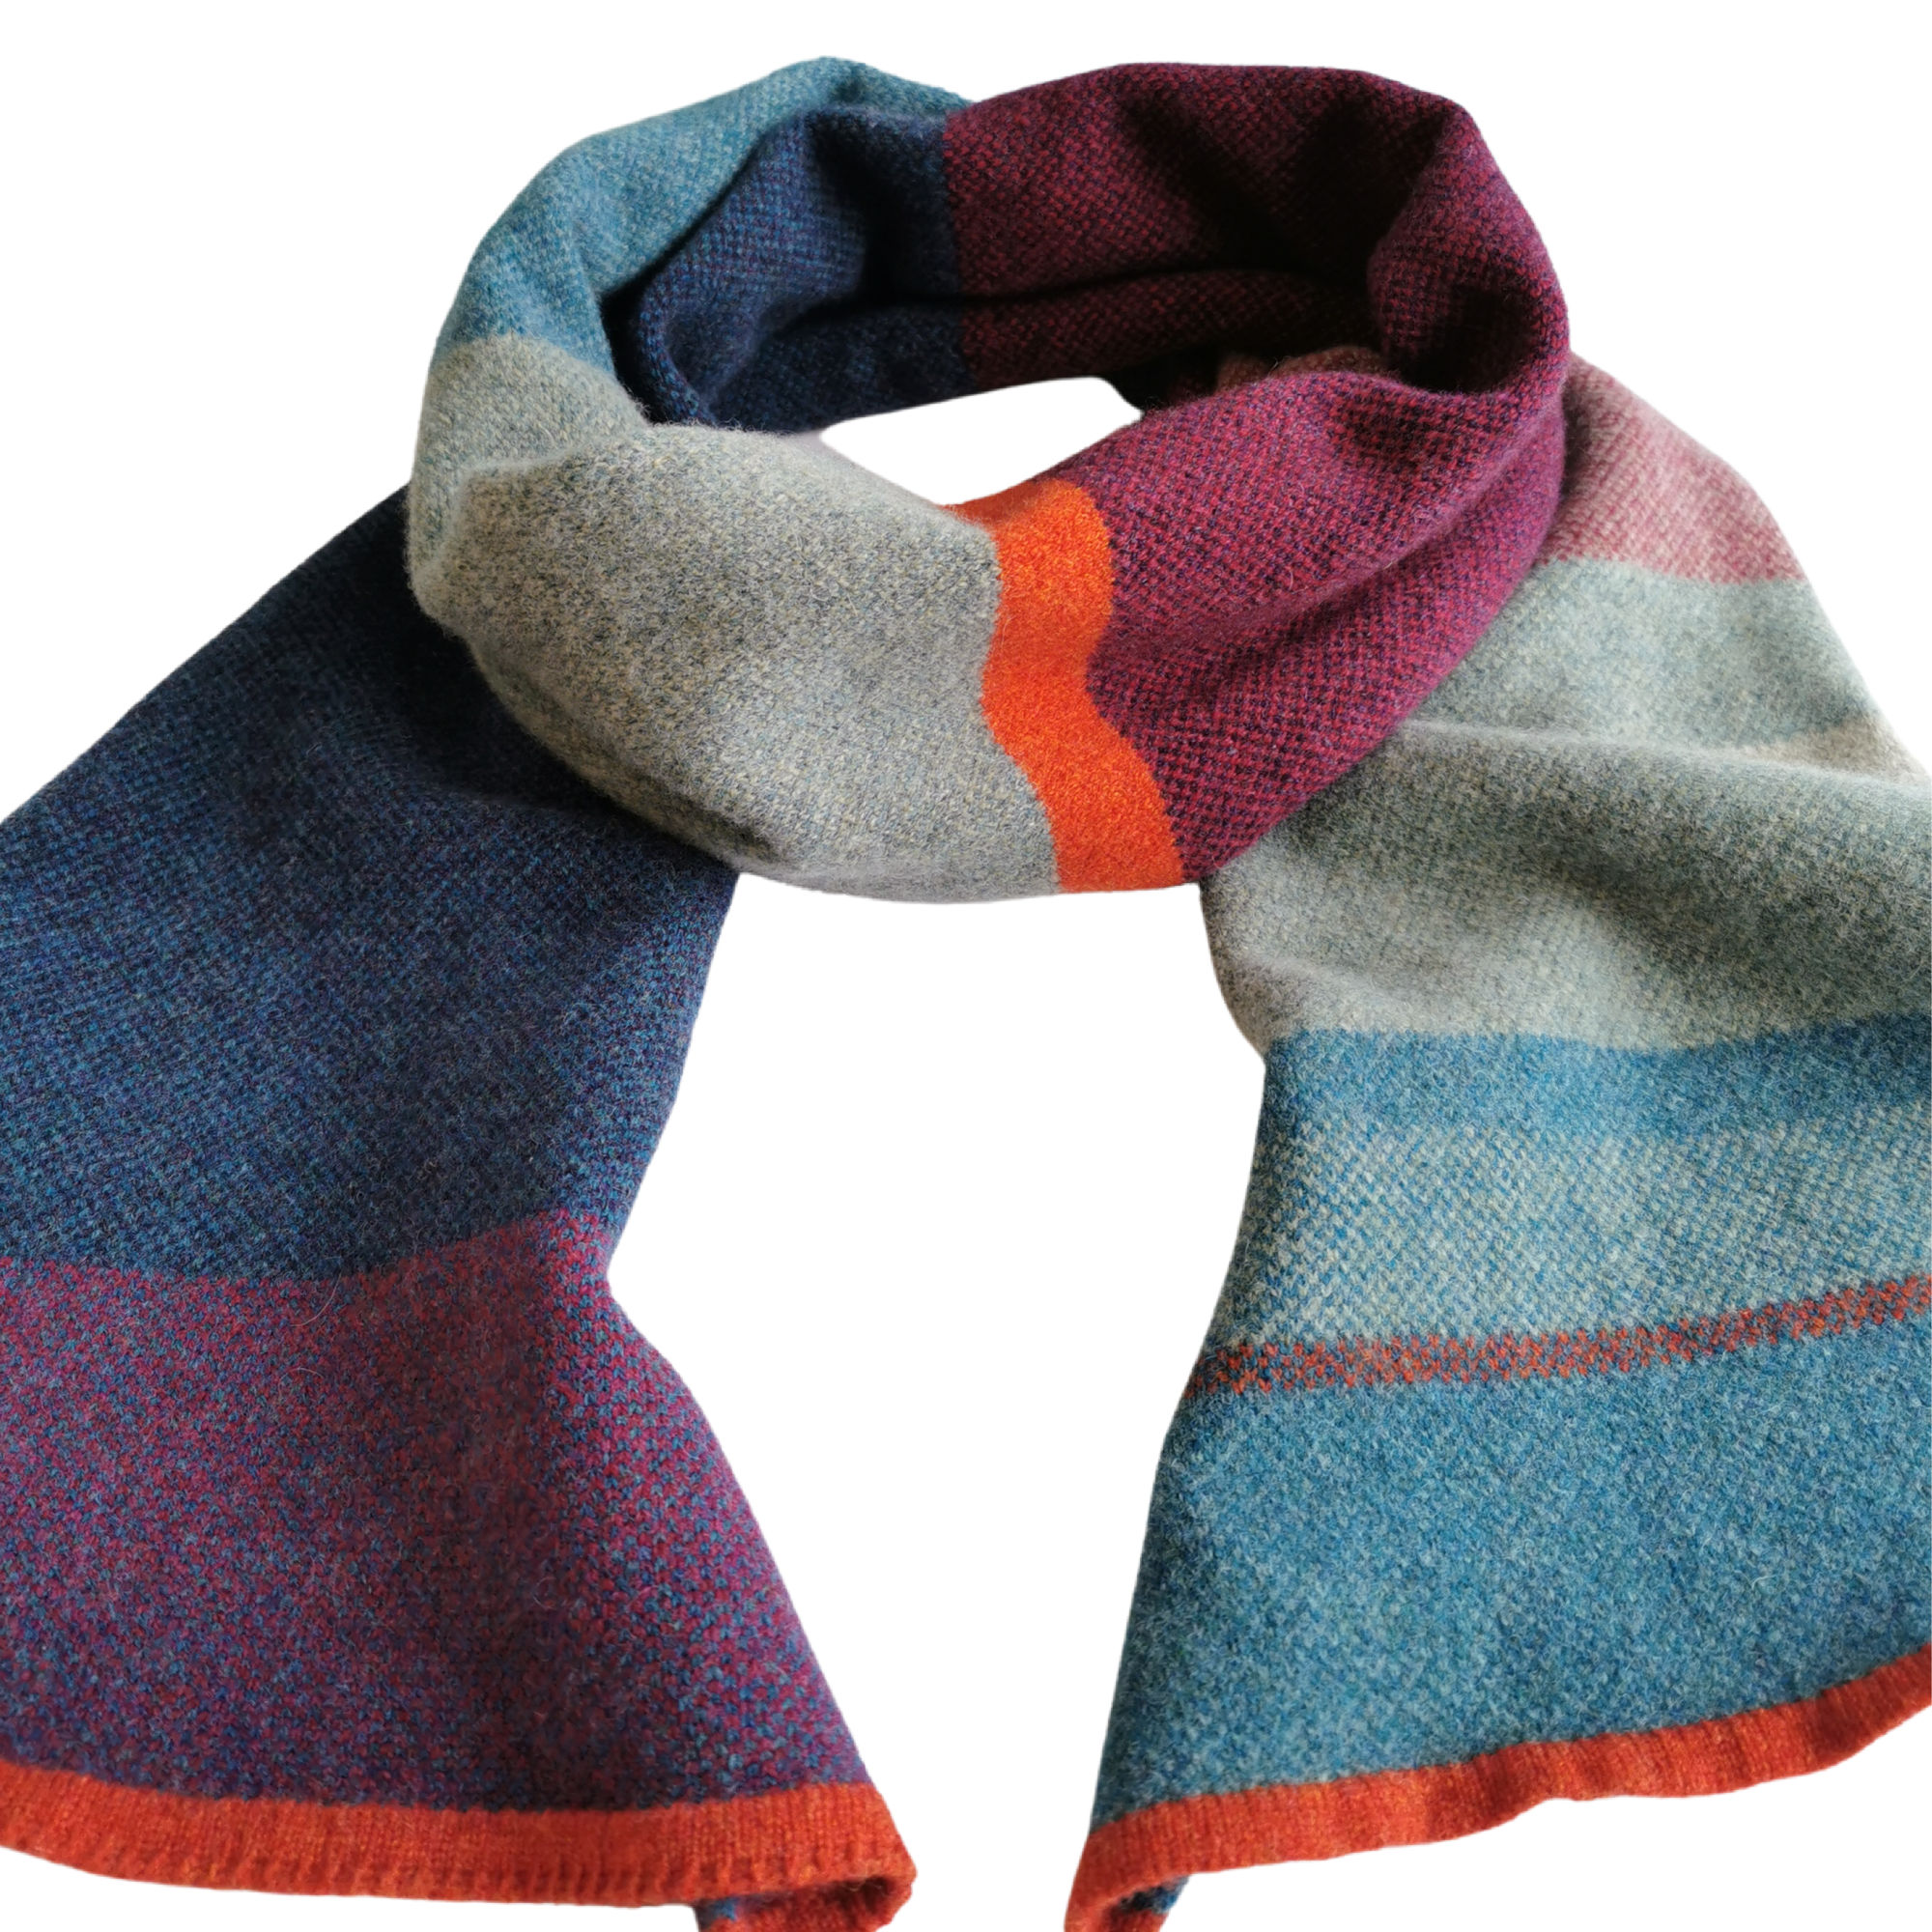 Heather Lambswool Scarf by Louise Wedderburn